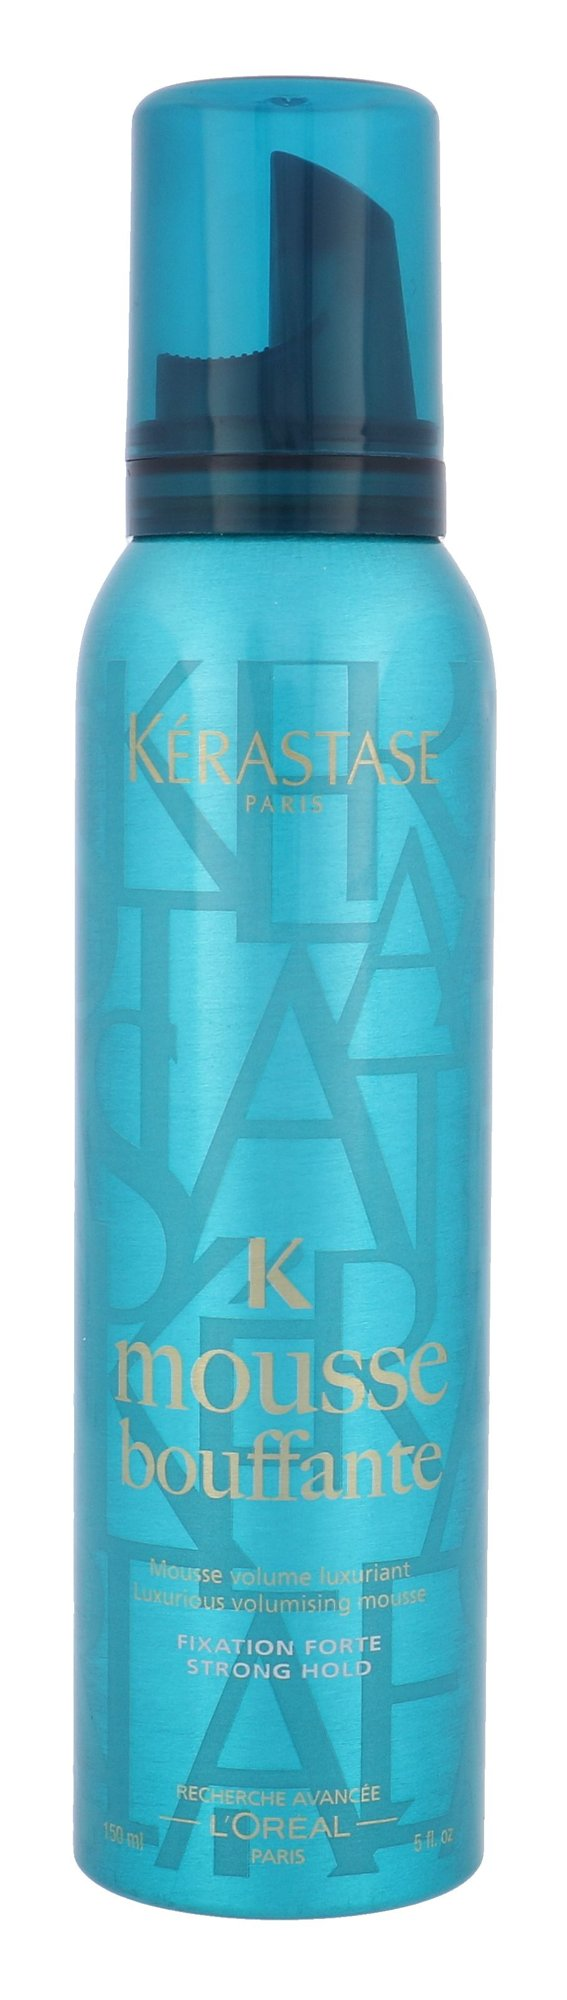 Kérastase Mousse Bouffante Cosmetic 150ml